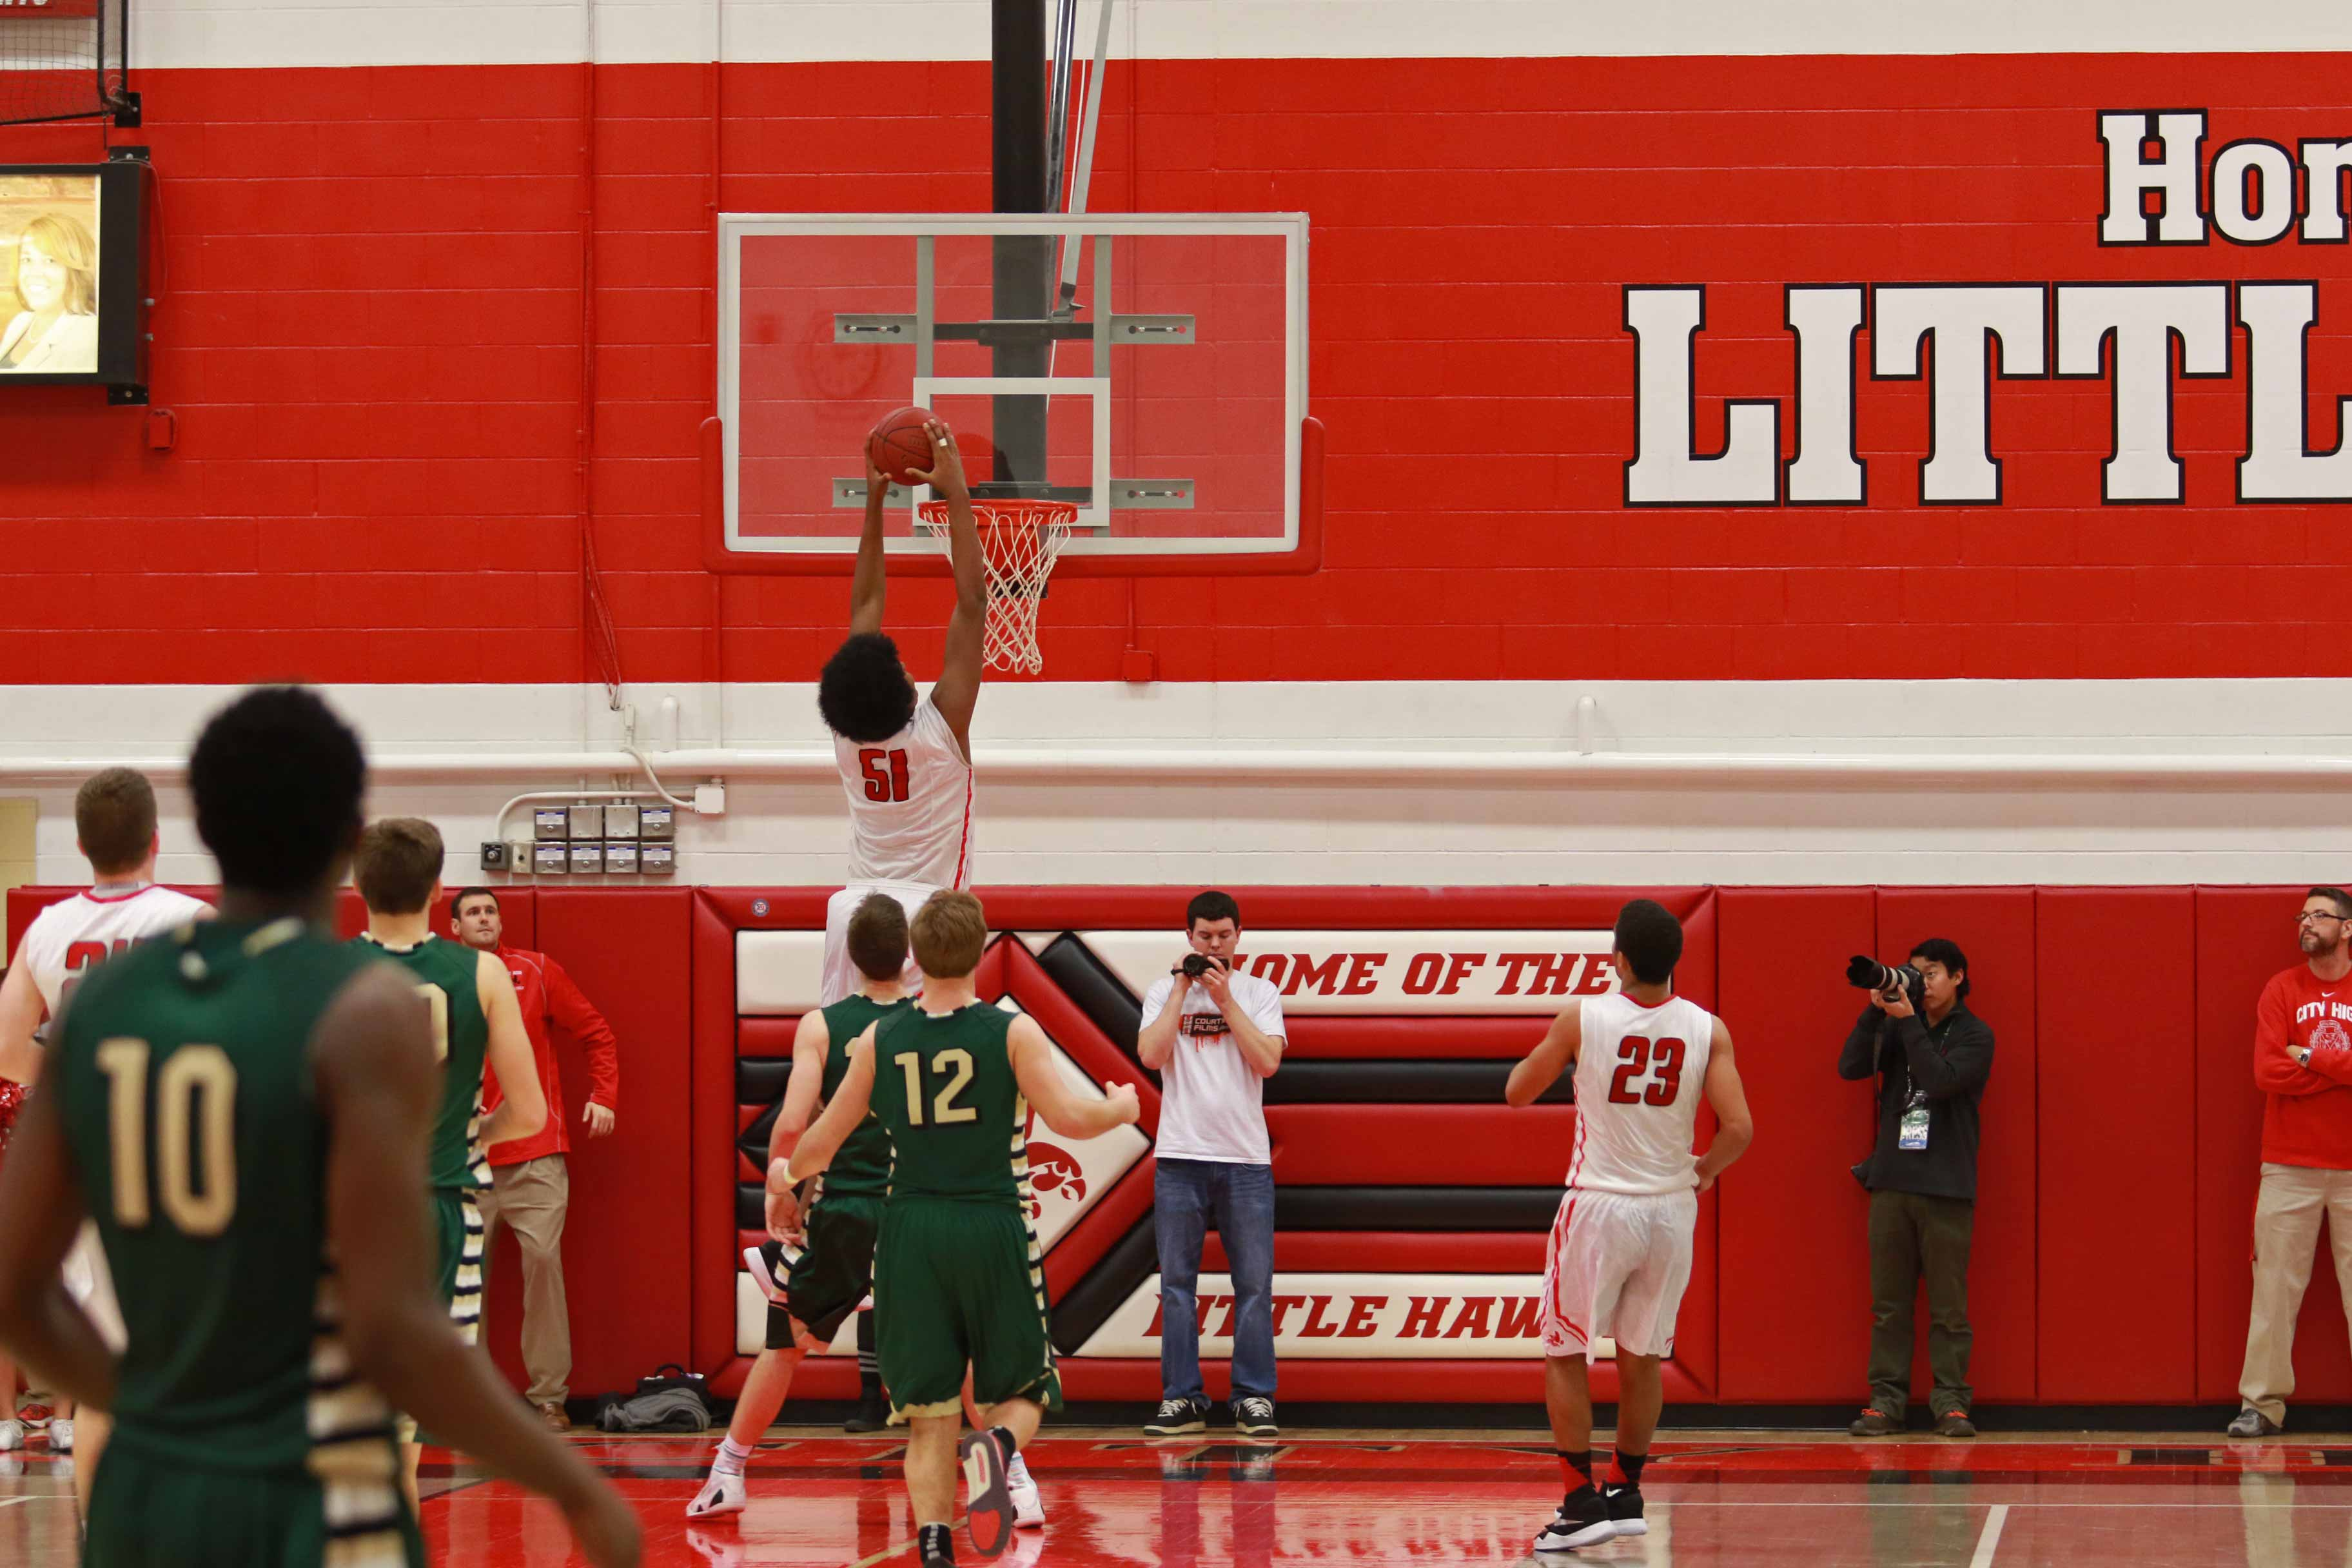 Micah+Martin+%2716+soars+towards+the+rim+while+dunking+against+West+High%27s+Trojans+on+Friday%2C+February+12th%2C+2016+at+City+High.